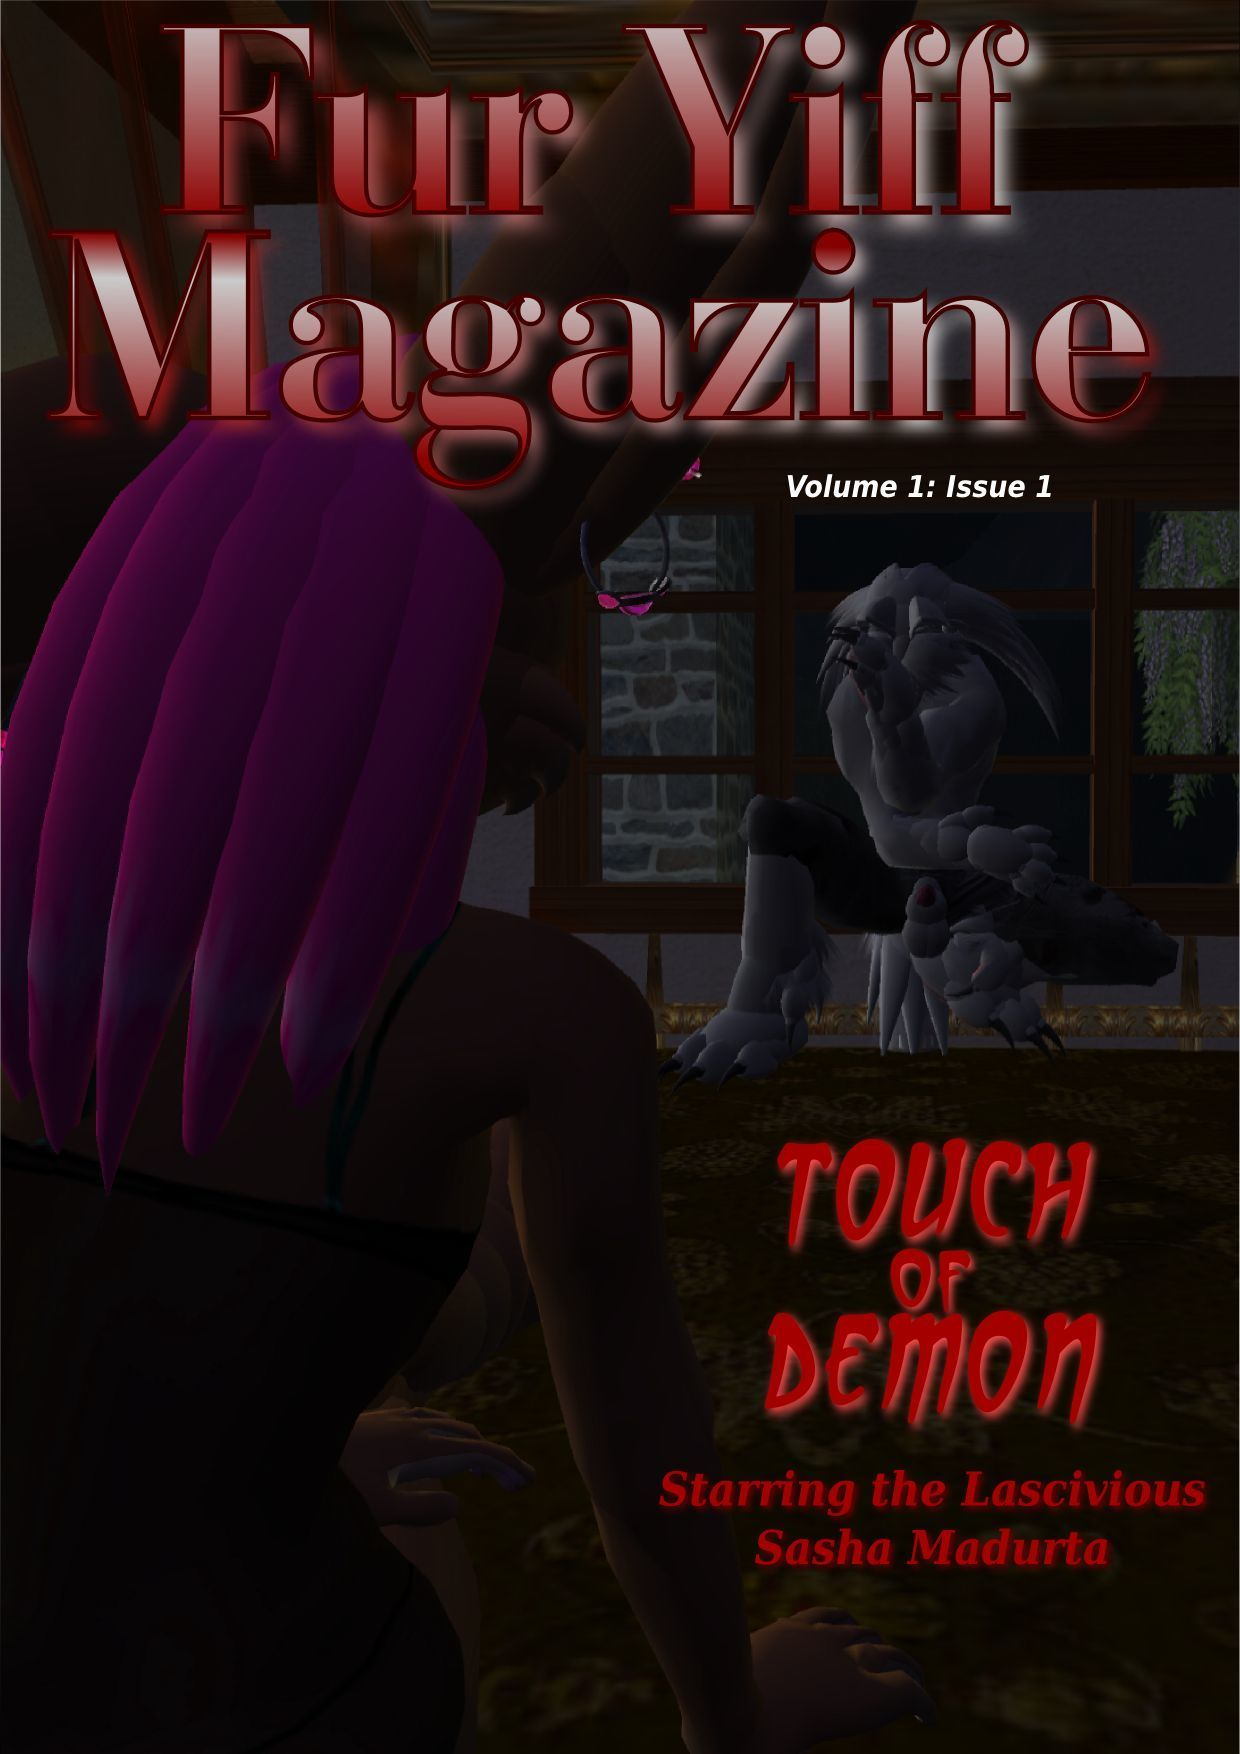 Fur Yiff Magazine - Vol 1 - Issue 1 - Touch Of Demon